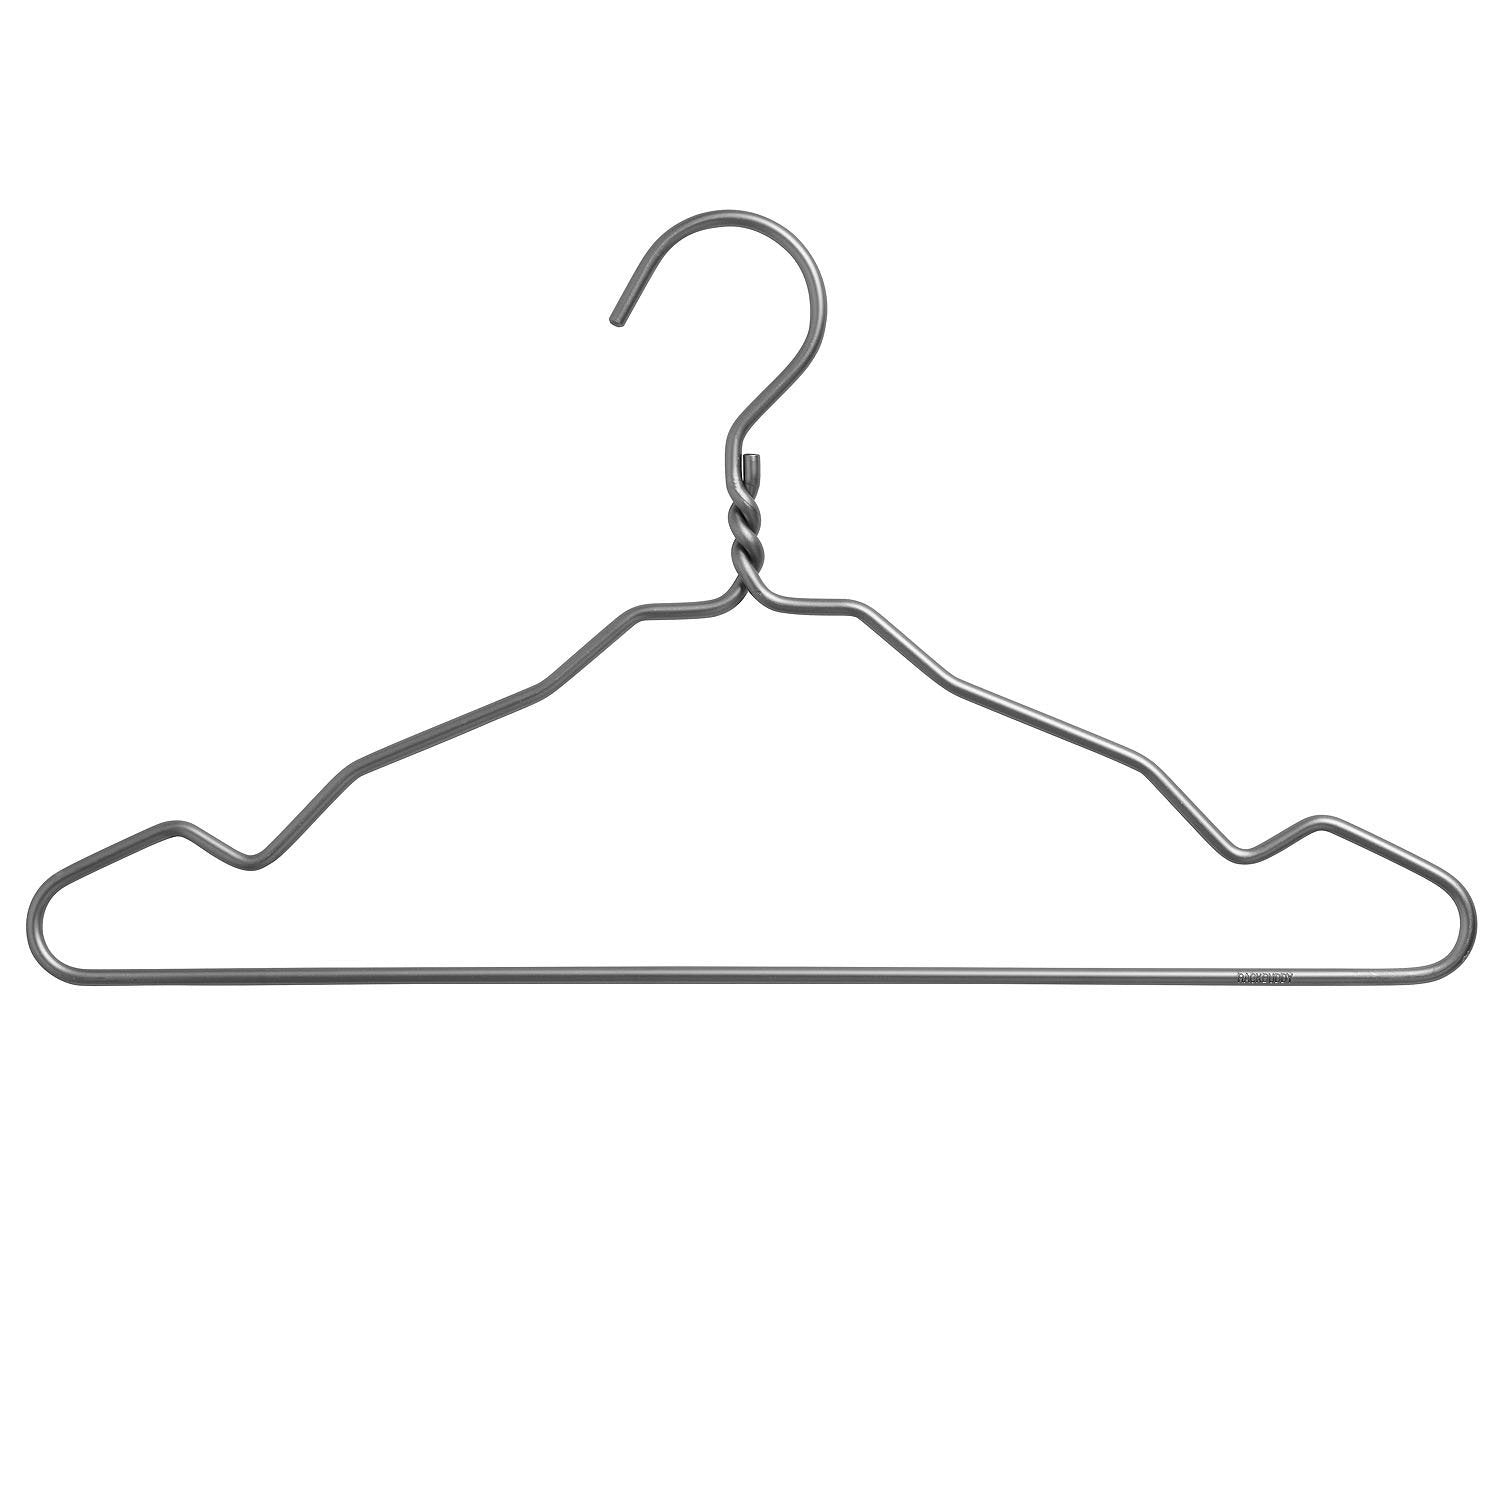 Clothes hangers in dark grey